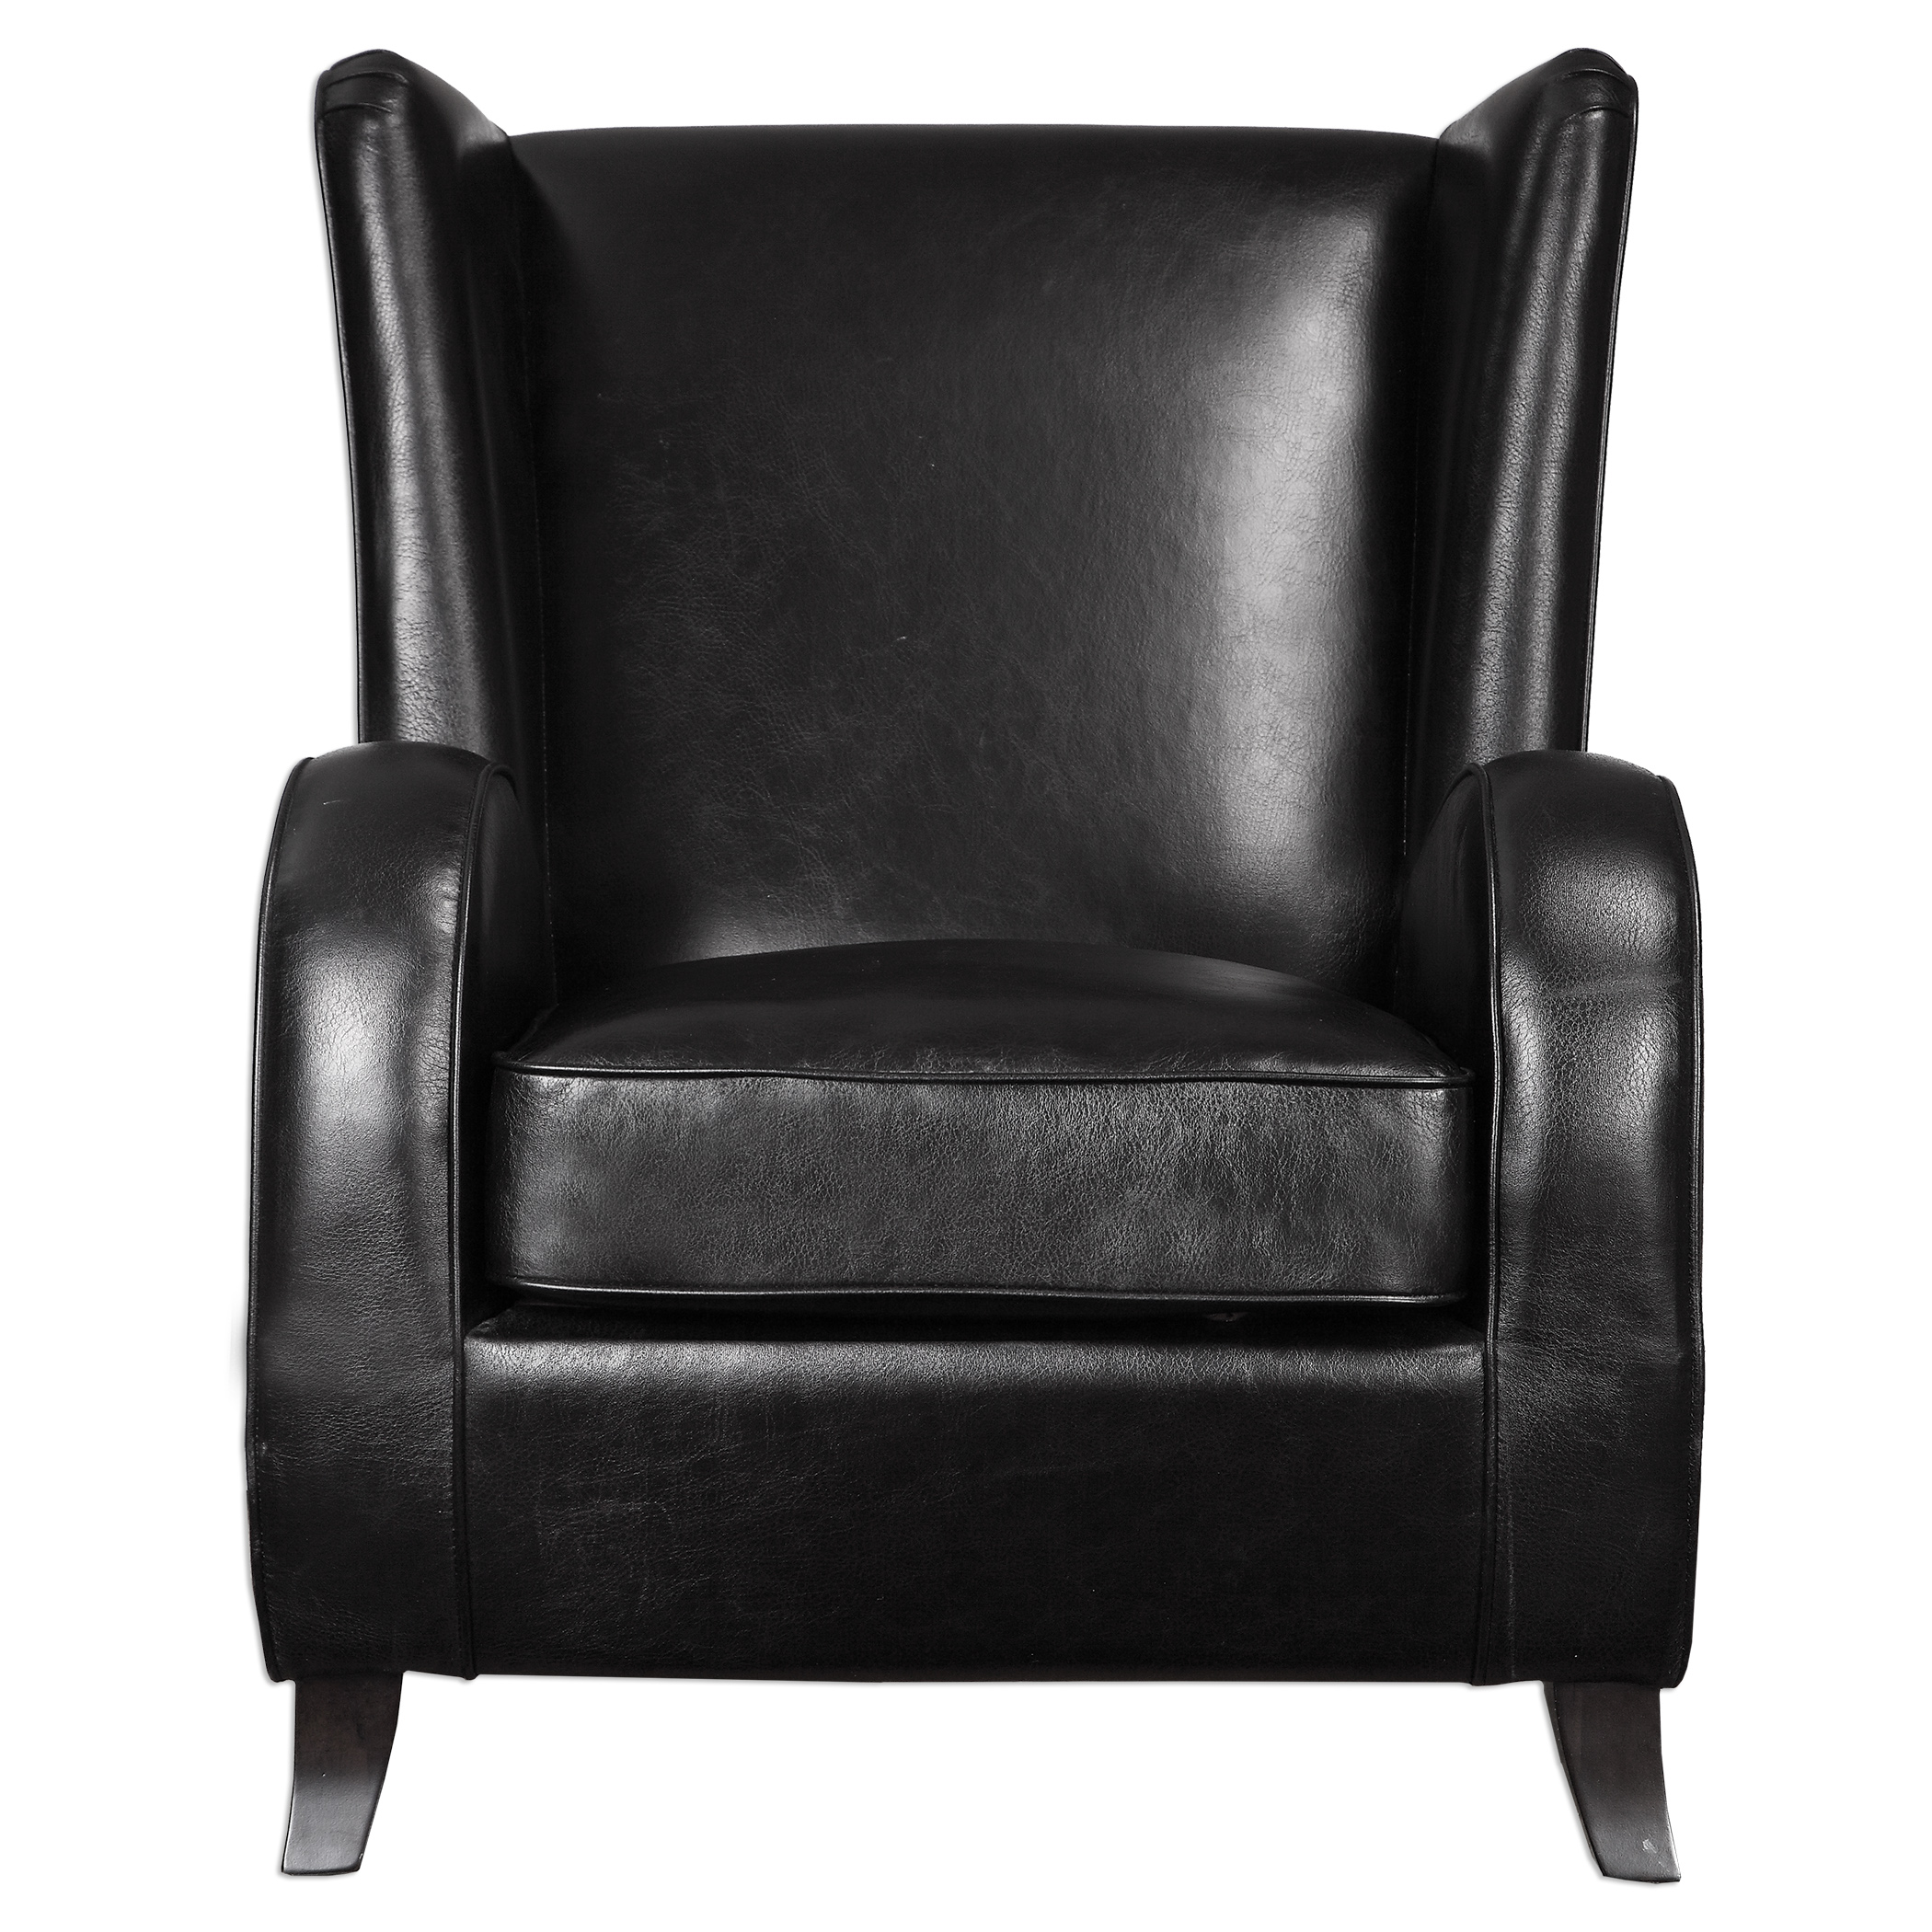 Uttermost Accent Furniture Lane Black Accent Chair - Item Number: 23252